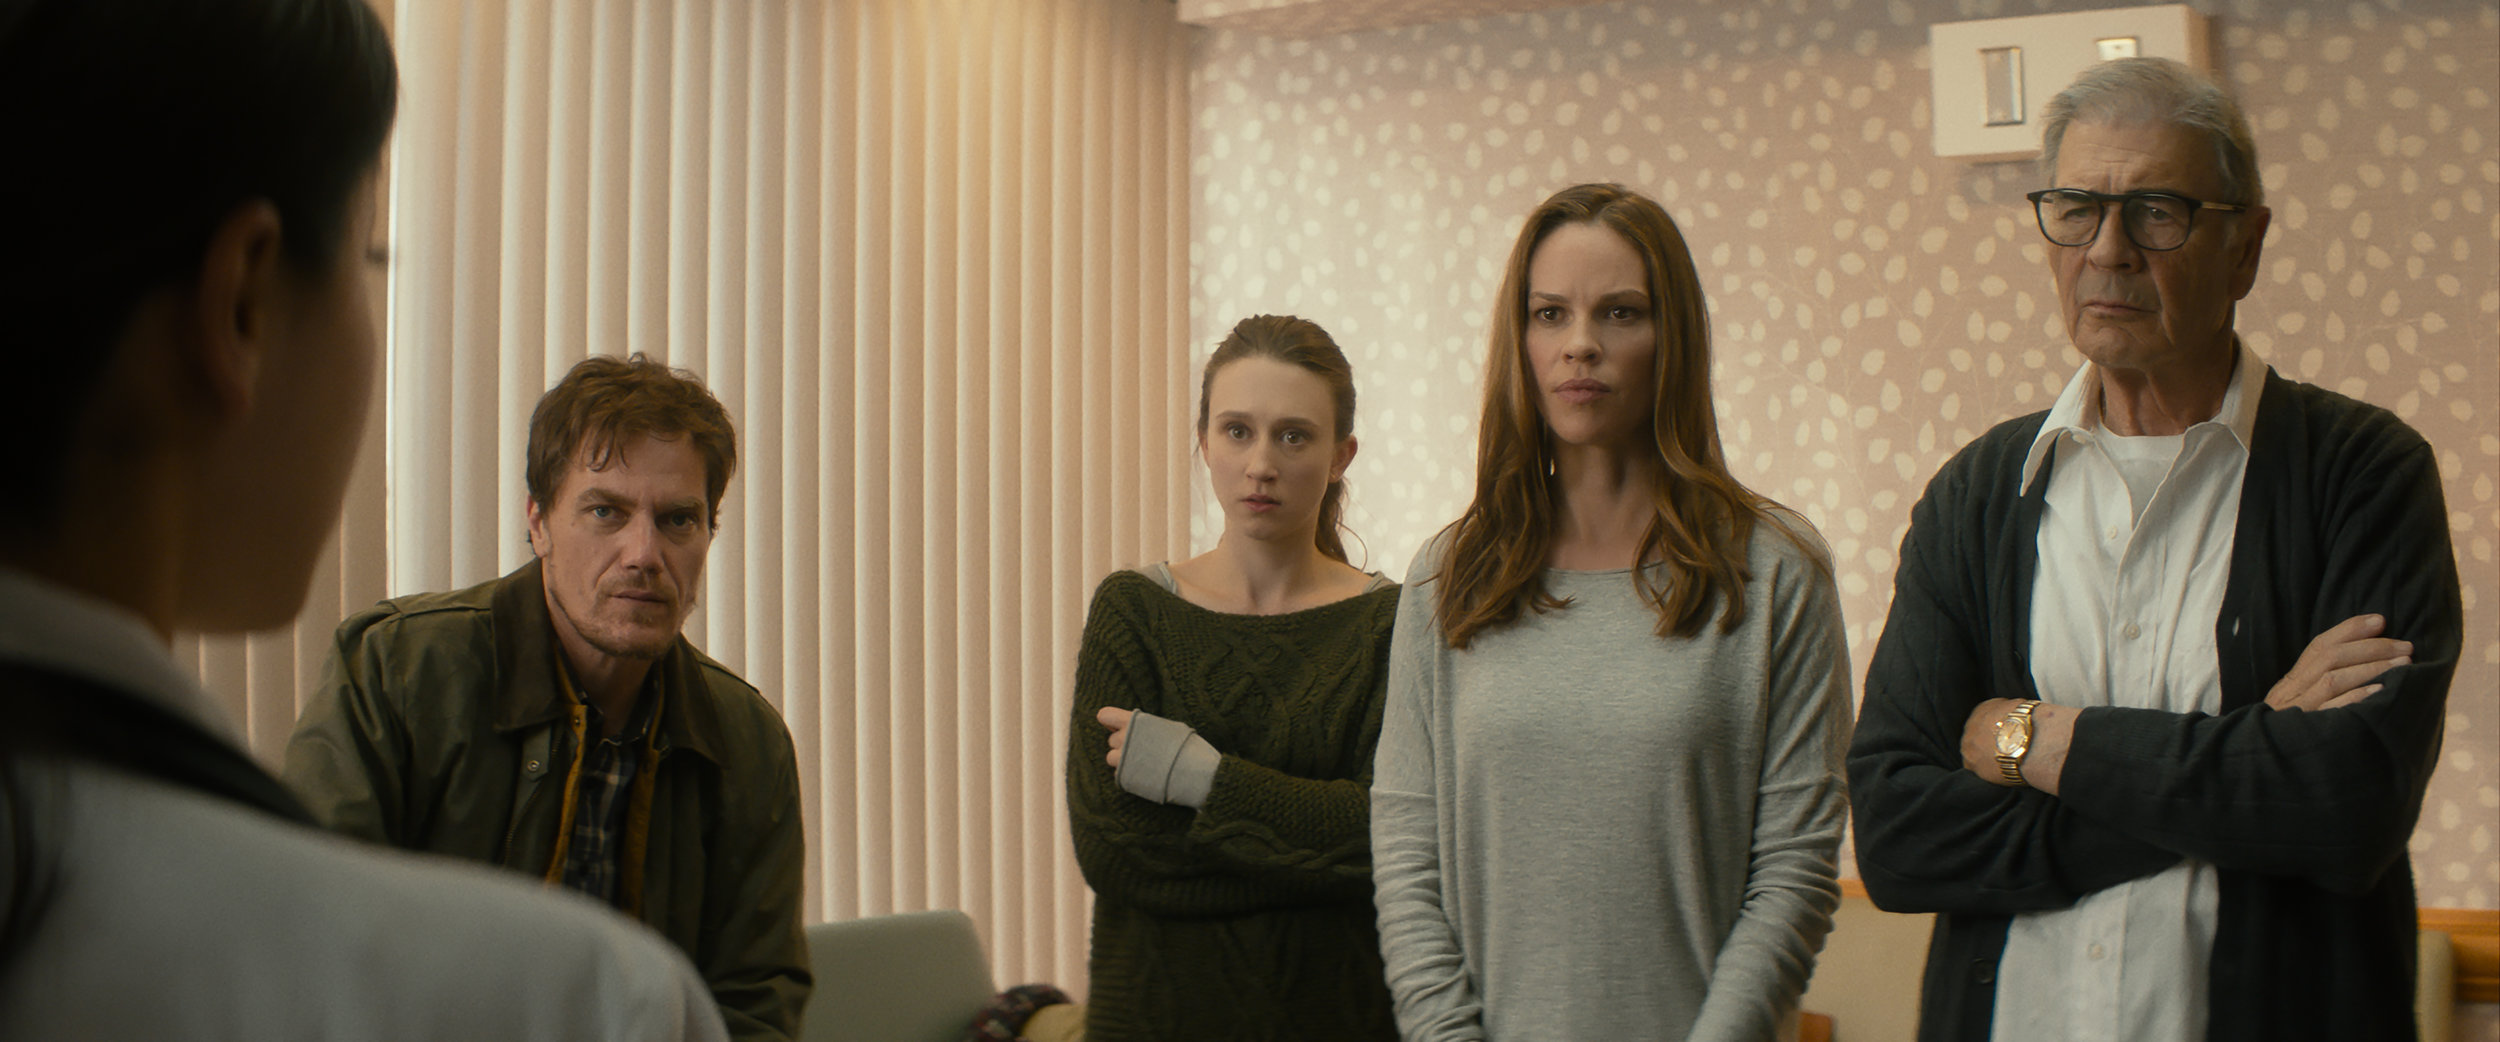 Michael Shannon, Taissa Farmiga, Hilary Swank and Robert Forester in WHAT THEY HAD